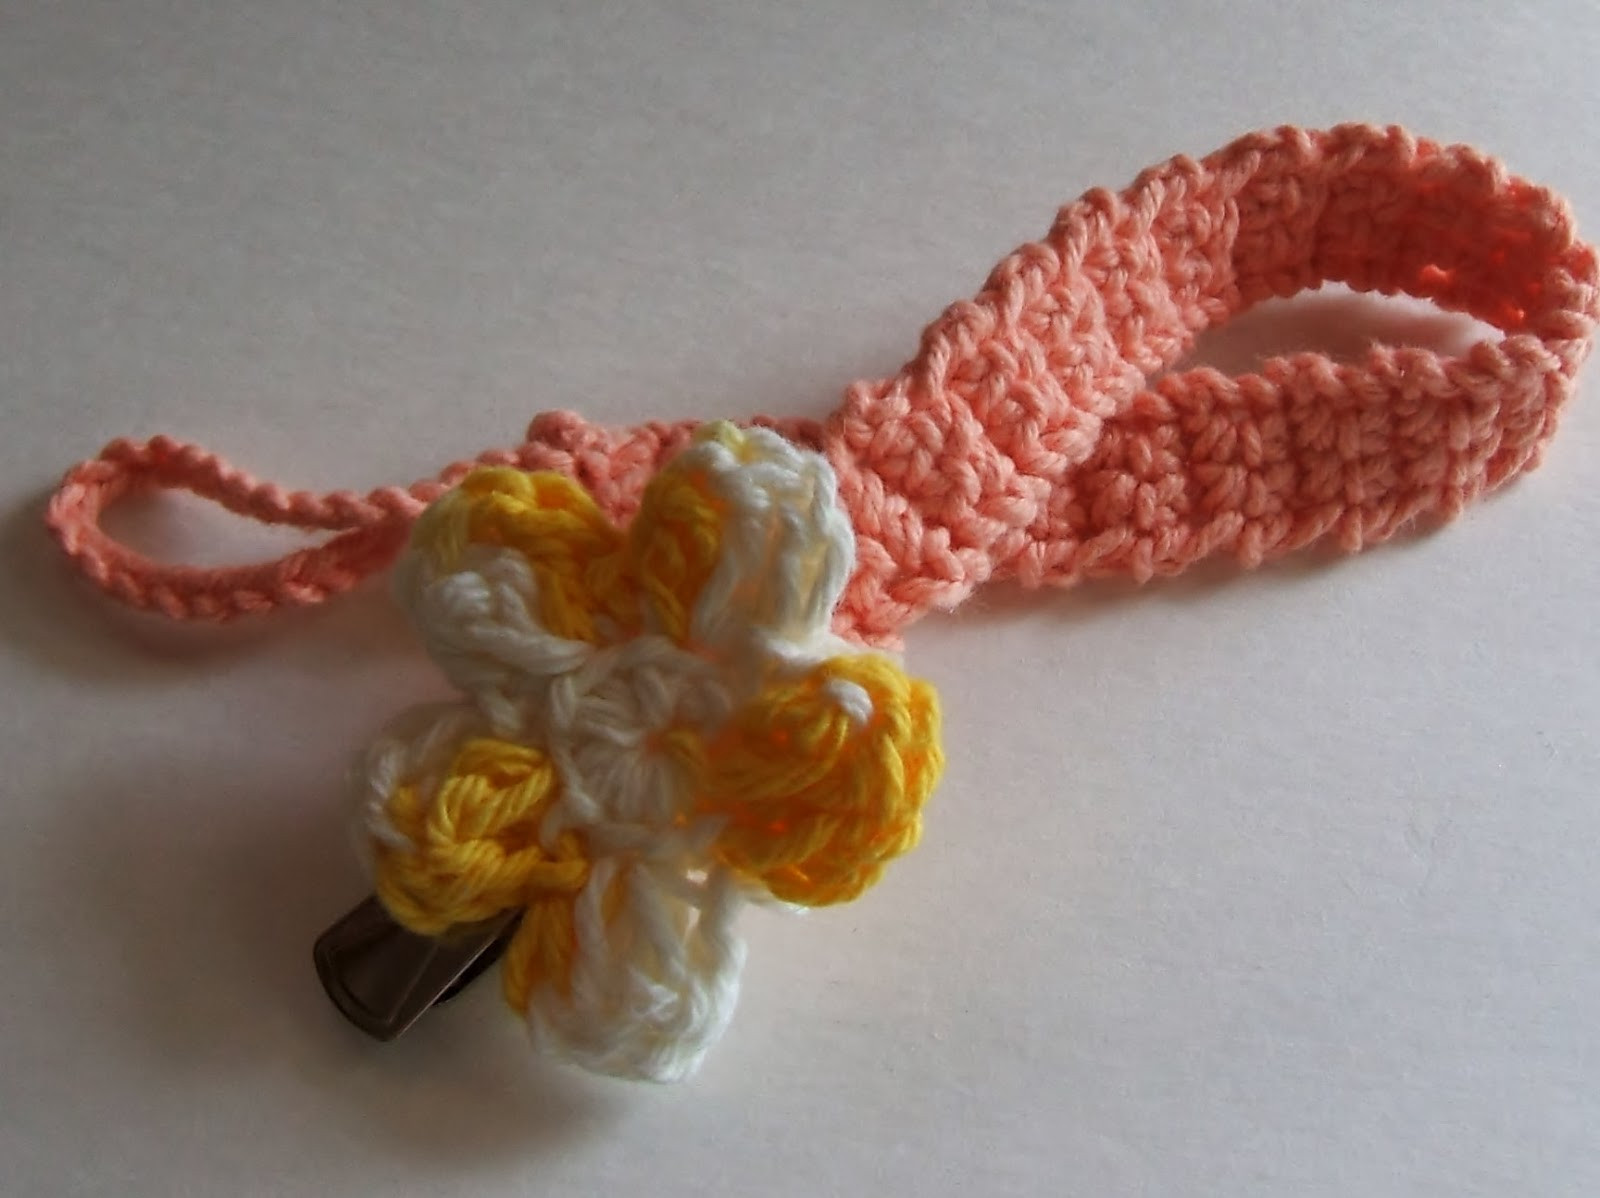 Awesome Yolanda S Creations Crochet Pacifier Clips 2 Crochet Pacifier Clips Of Lovely 50 Ideas Crochet Pacifier Clips